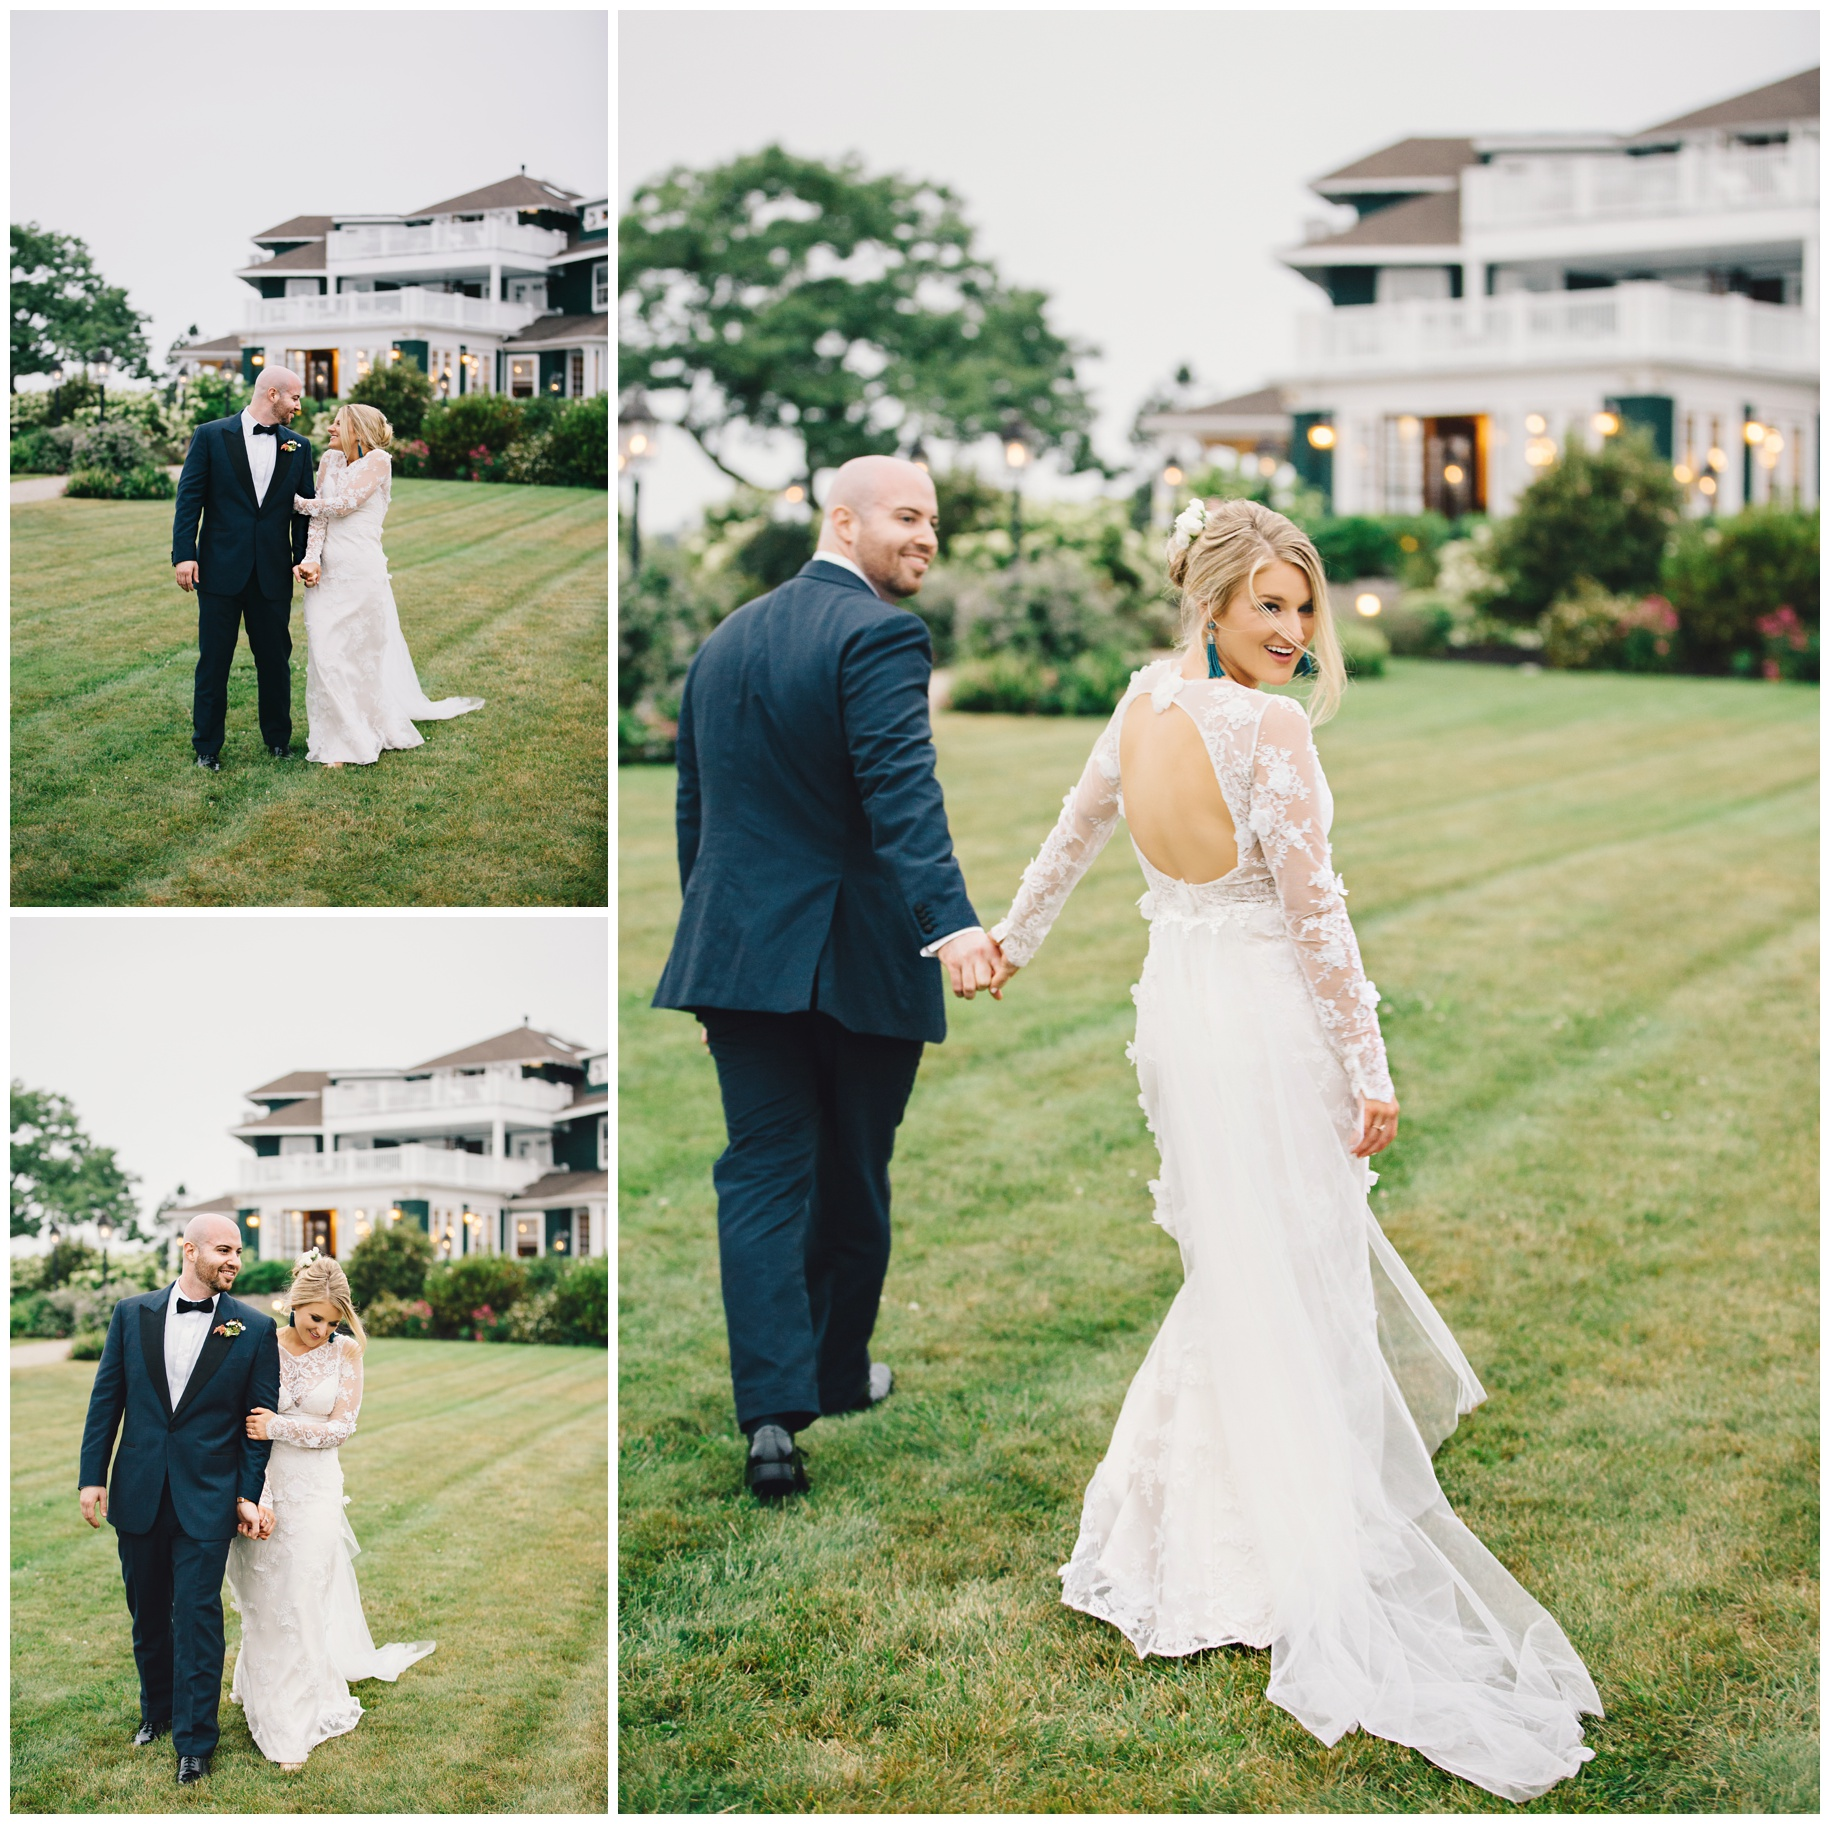 maineweddingphotographer_frenchspoint_stocktonsprings-092